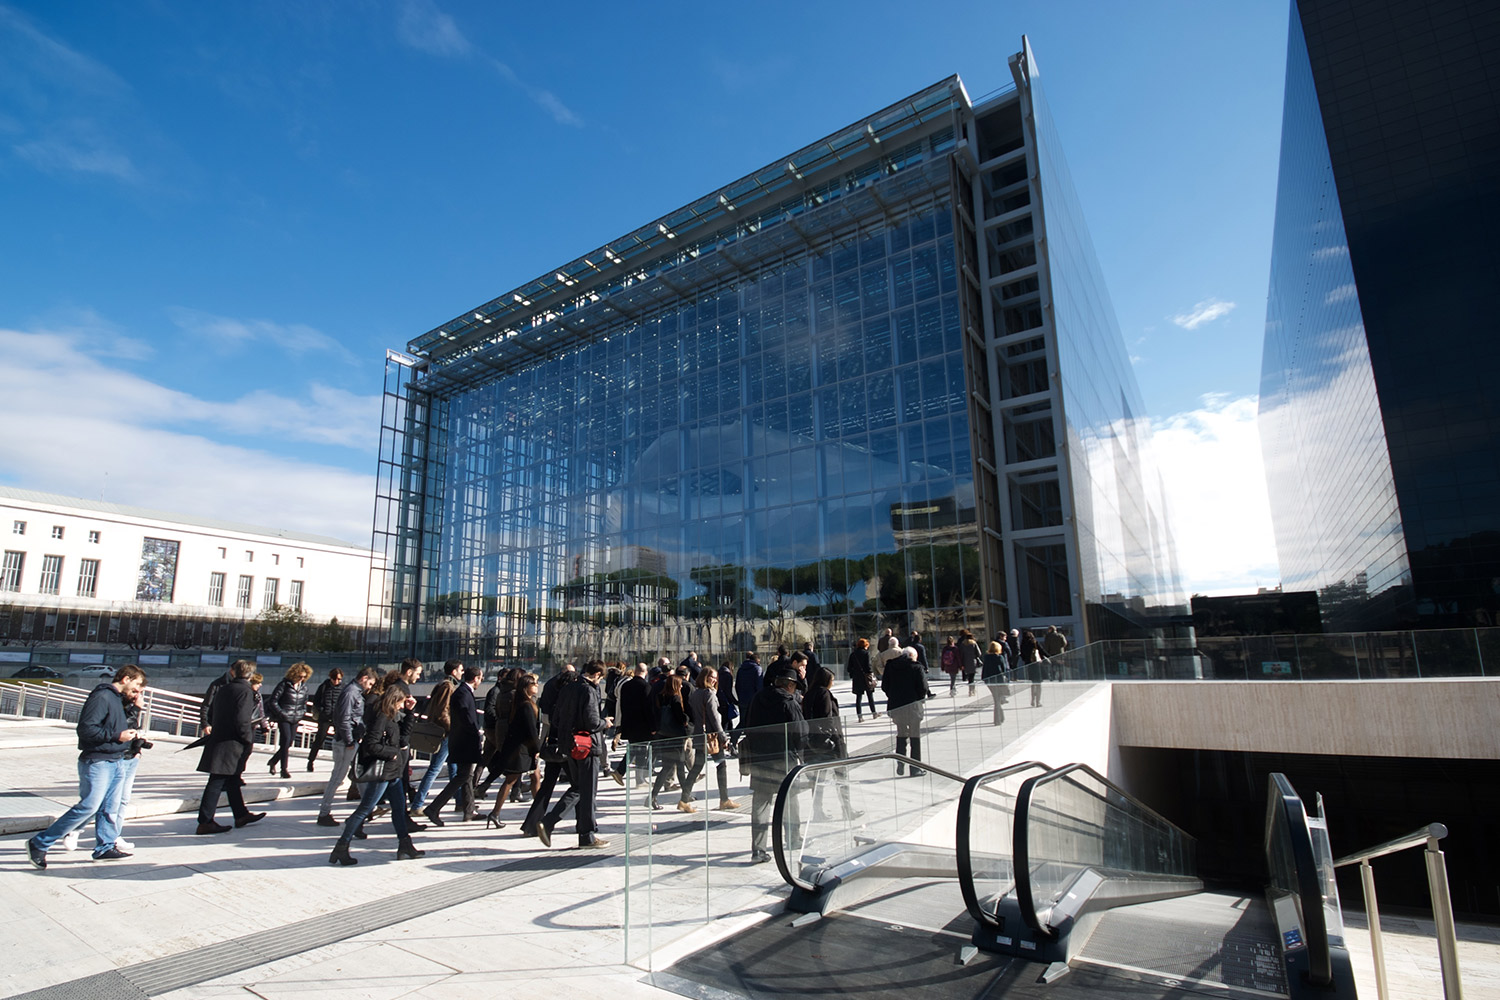 Crowds assembling outside of Rome's new convention centre